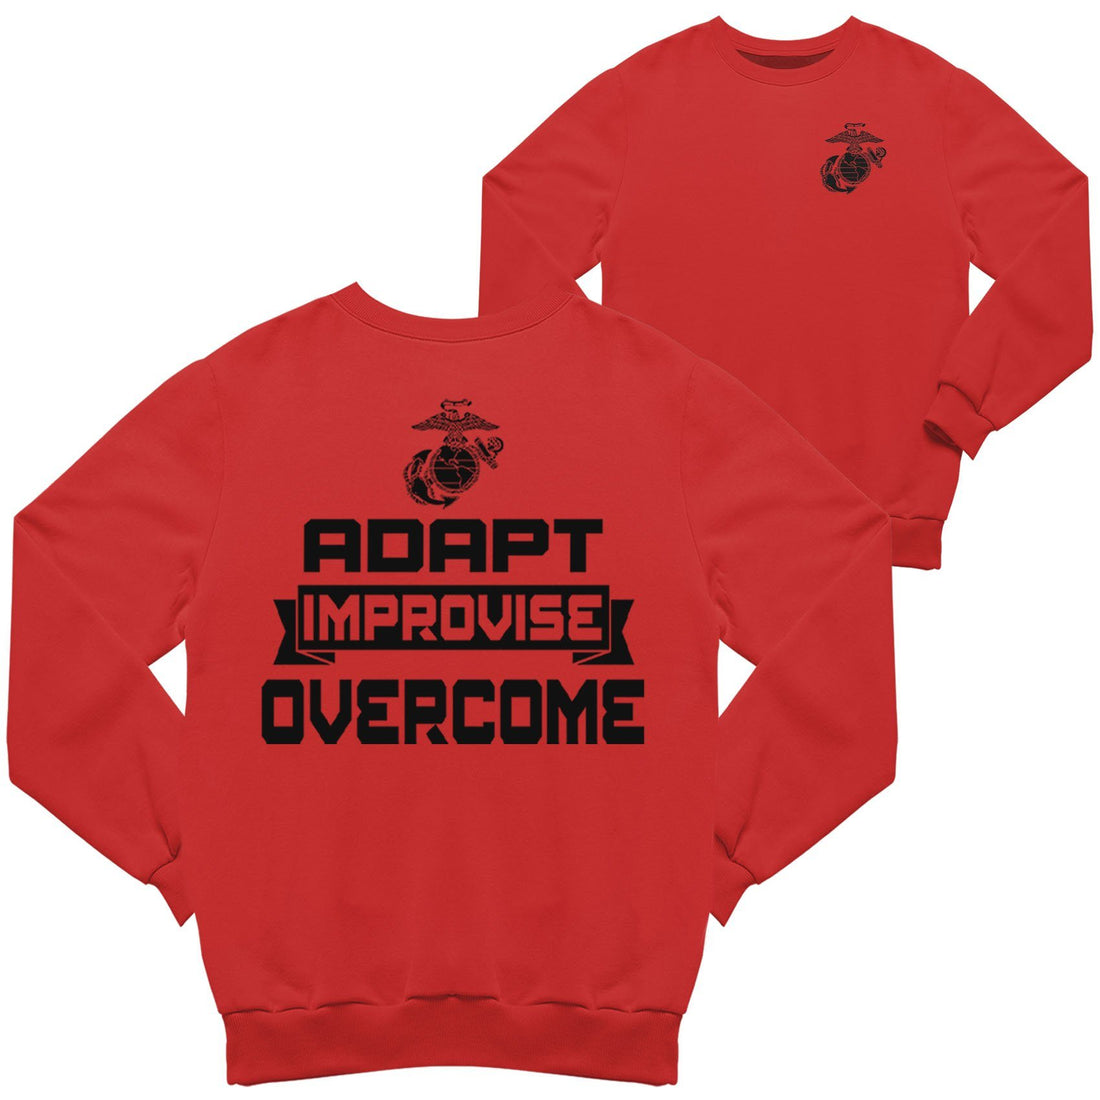 Adapt, Improvise, Overcome 2-Sided Sweatshirt - Marine Corps Direct